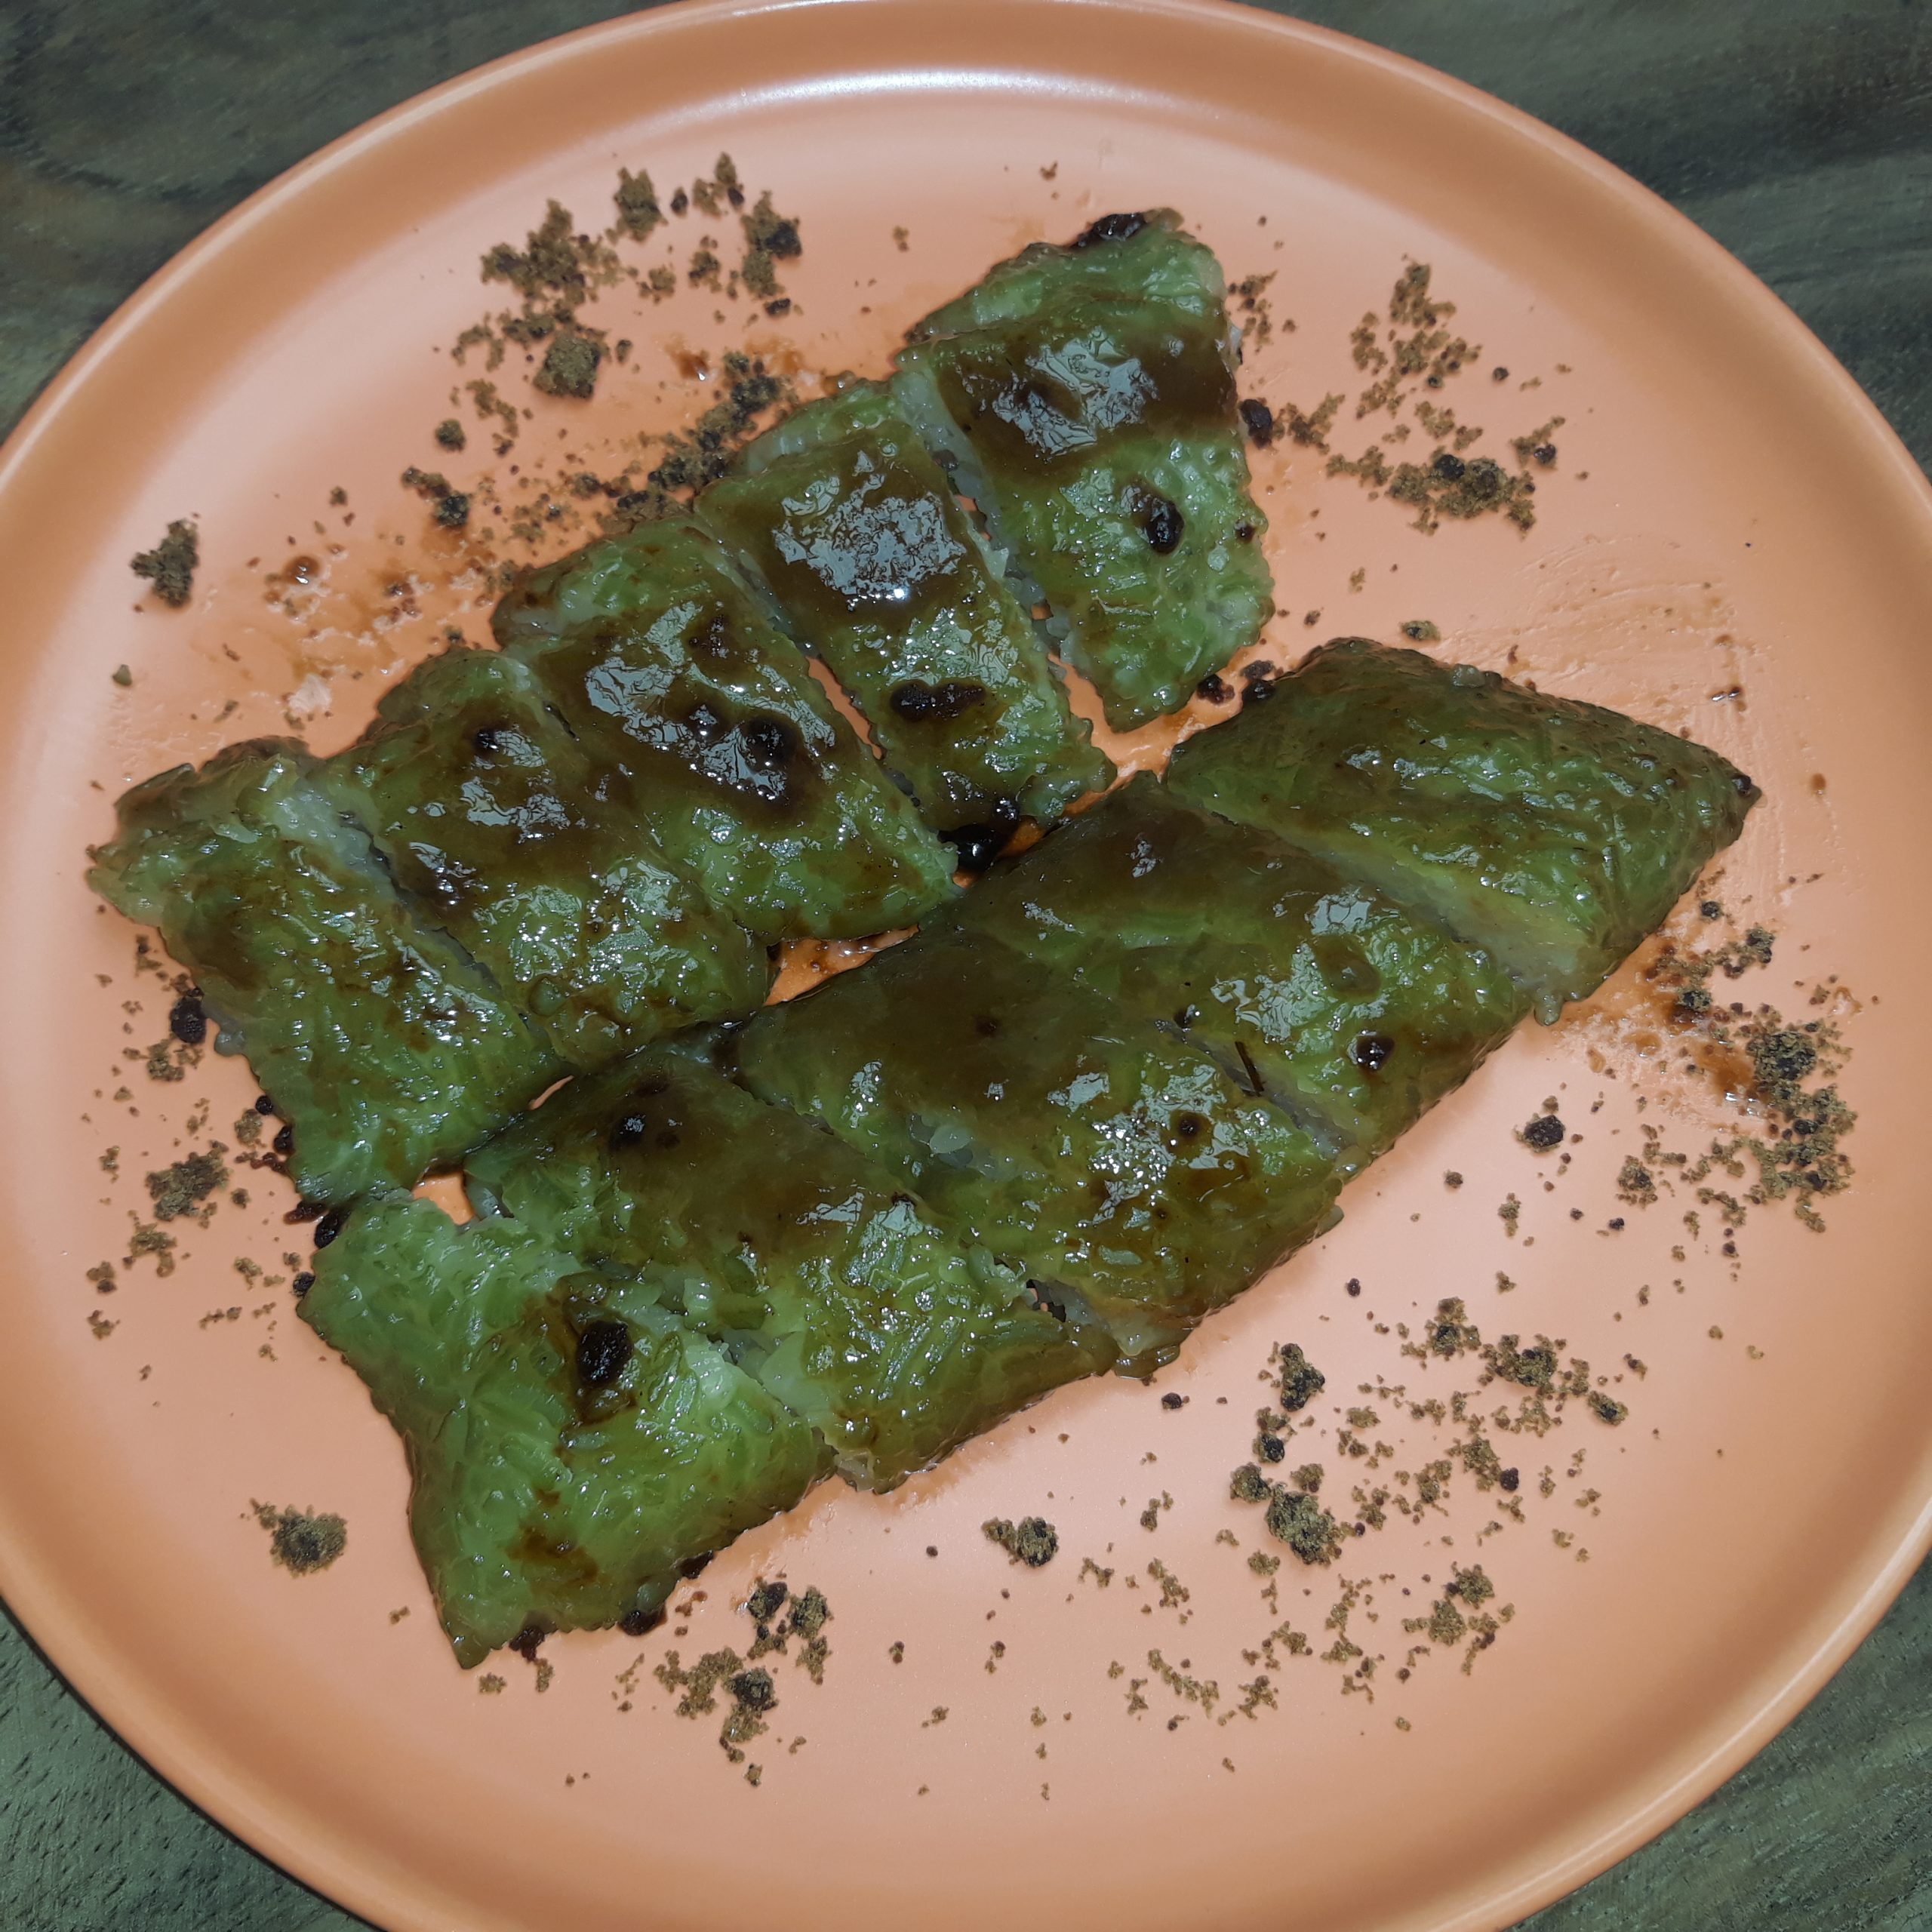 Two pieces of suman sliced into smaller pieces topped with latik.